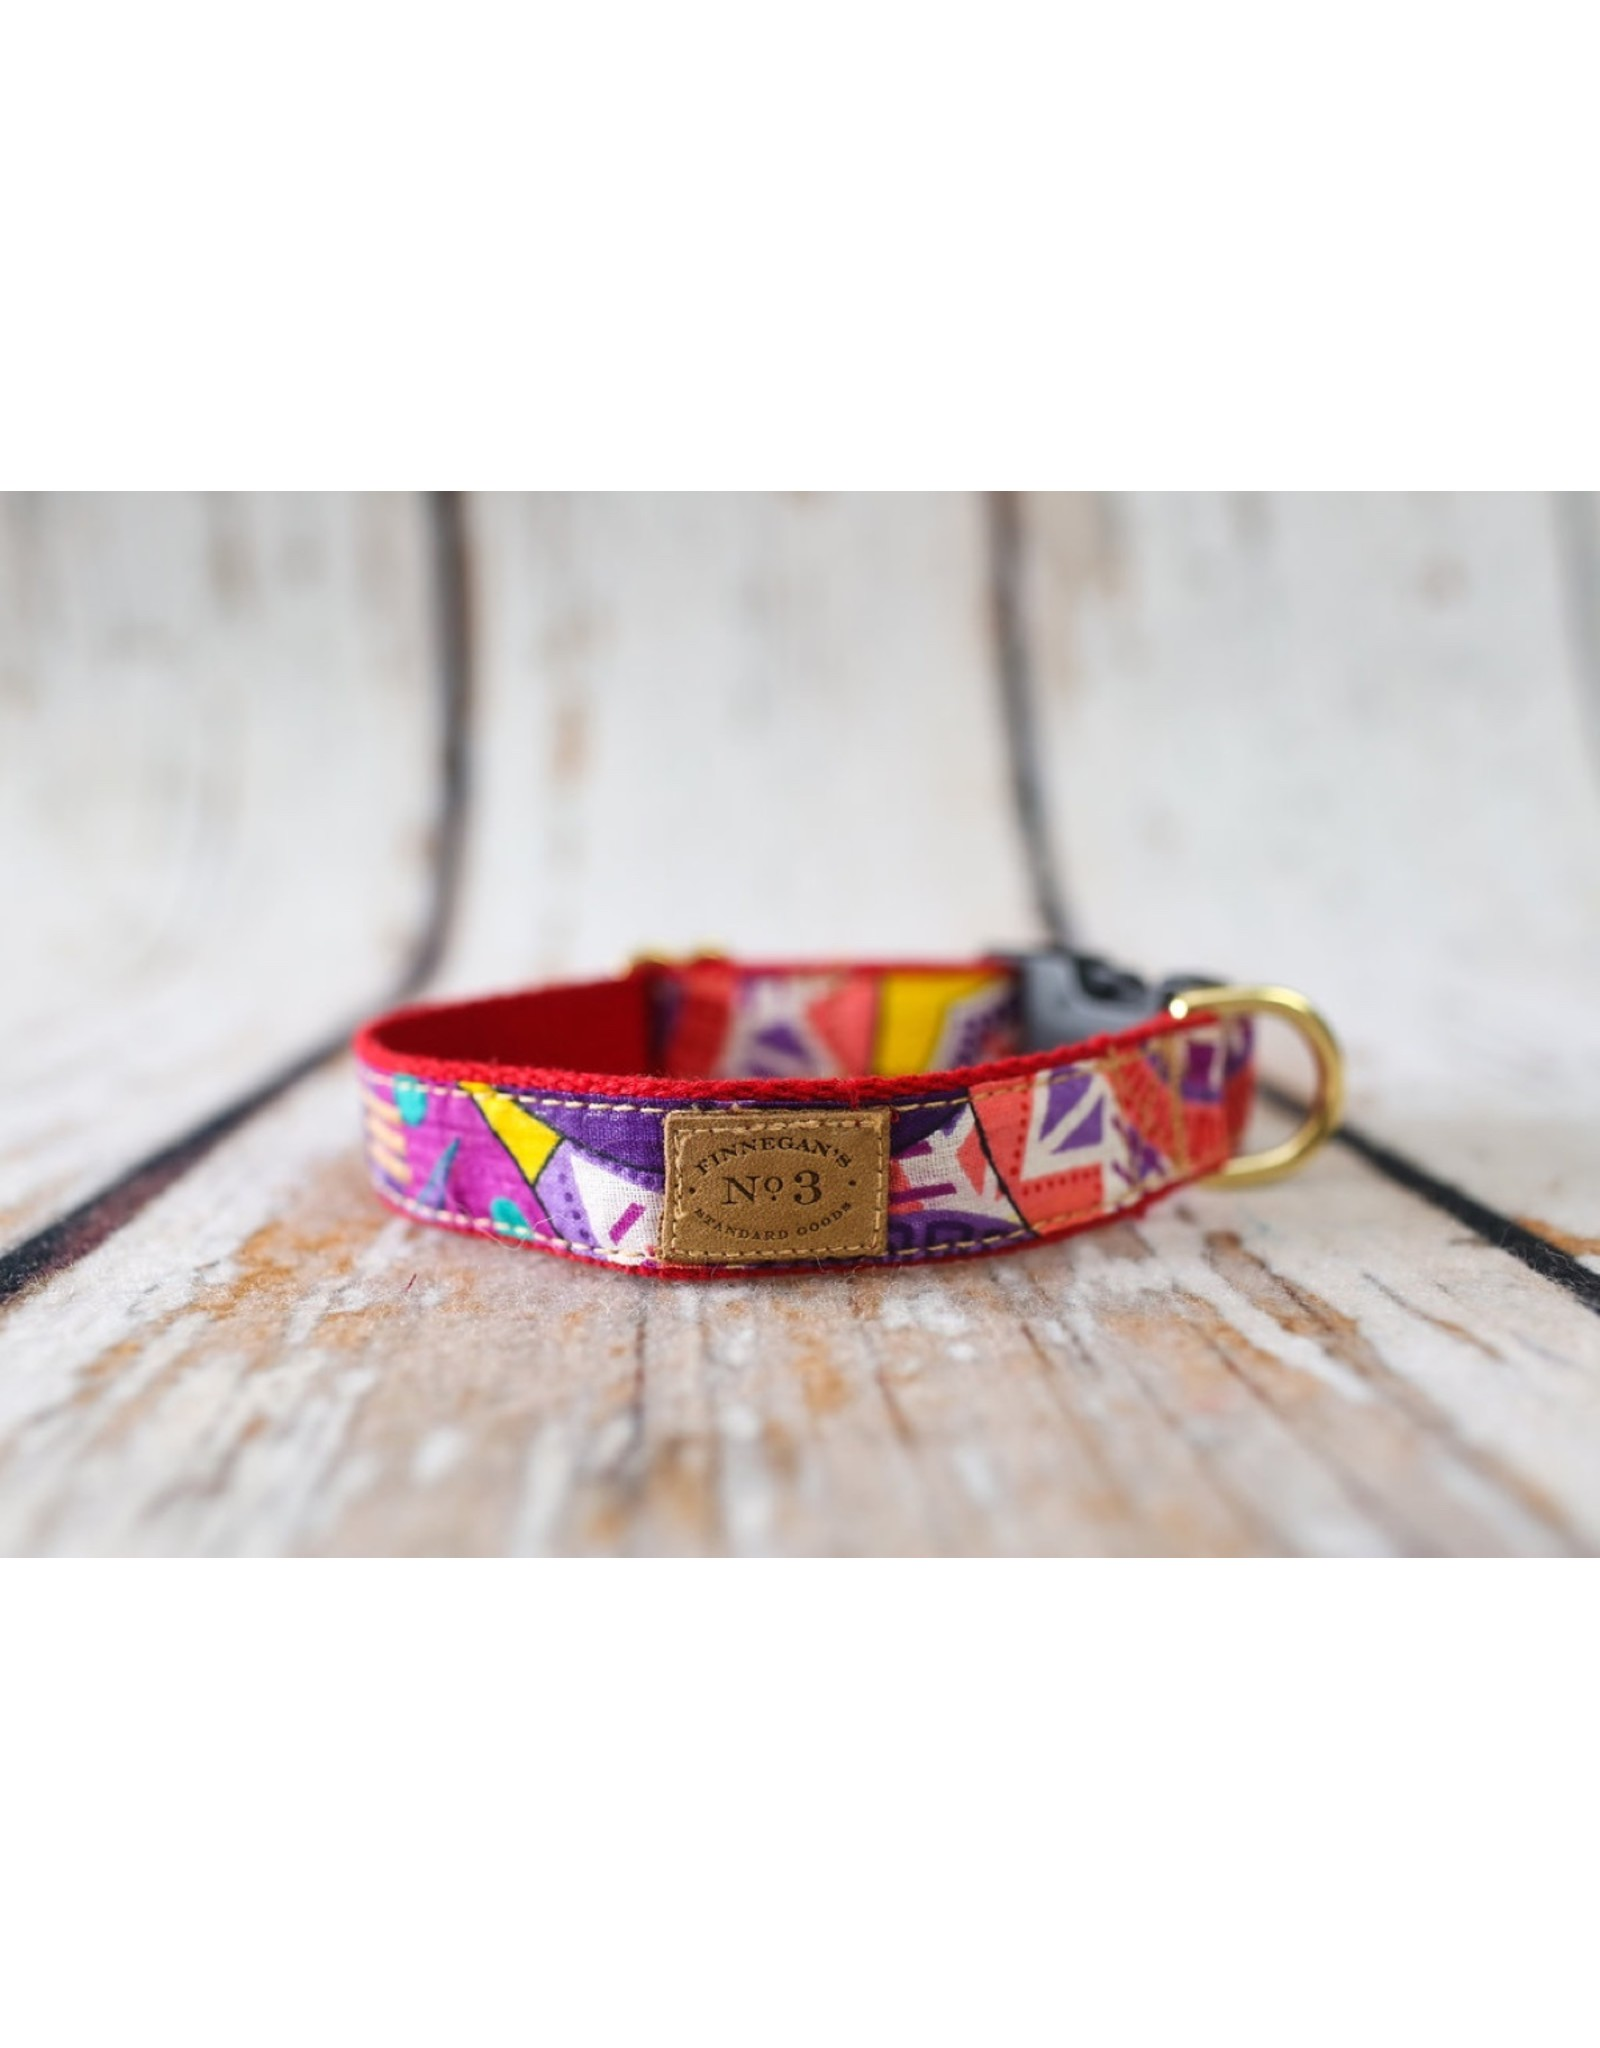 Bella Bean Couture FINNEGAN'S STANDARD GOODS SUMMER AFRICAN PRINT DOG COLLAR